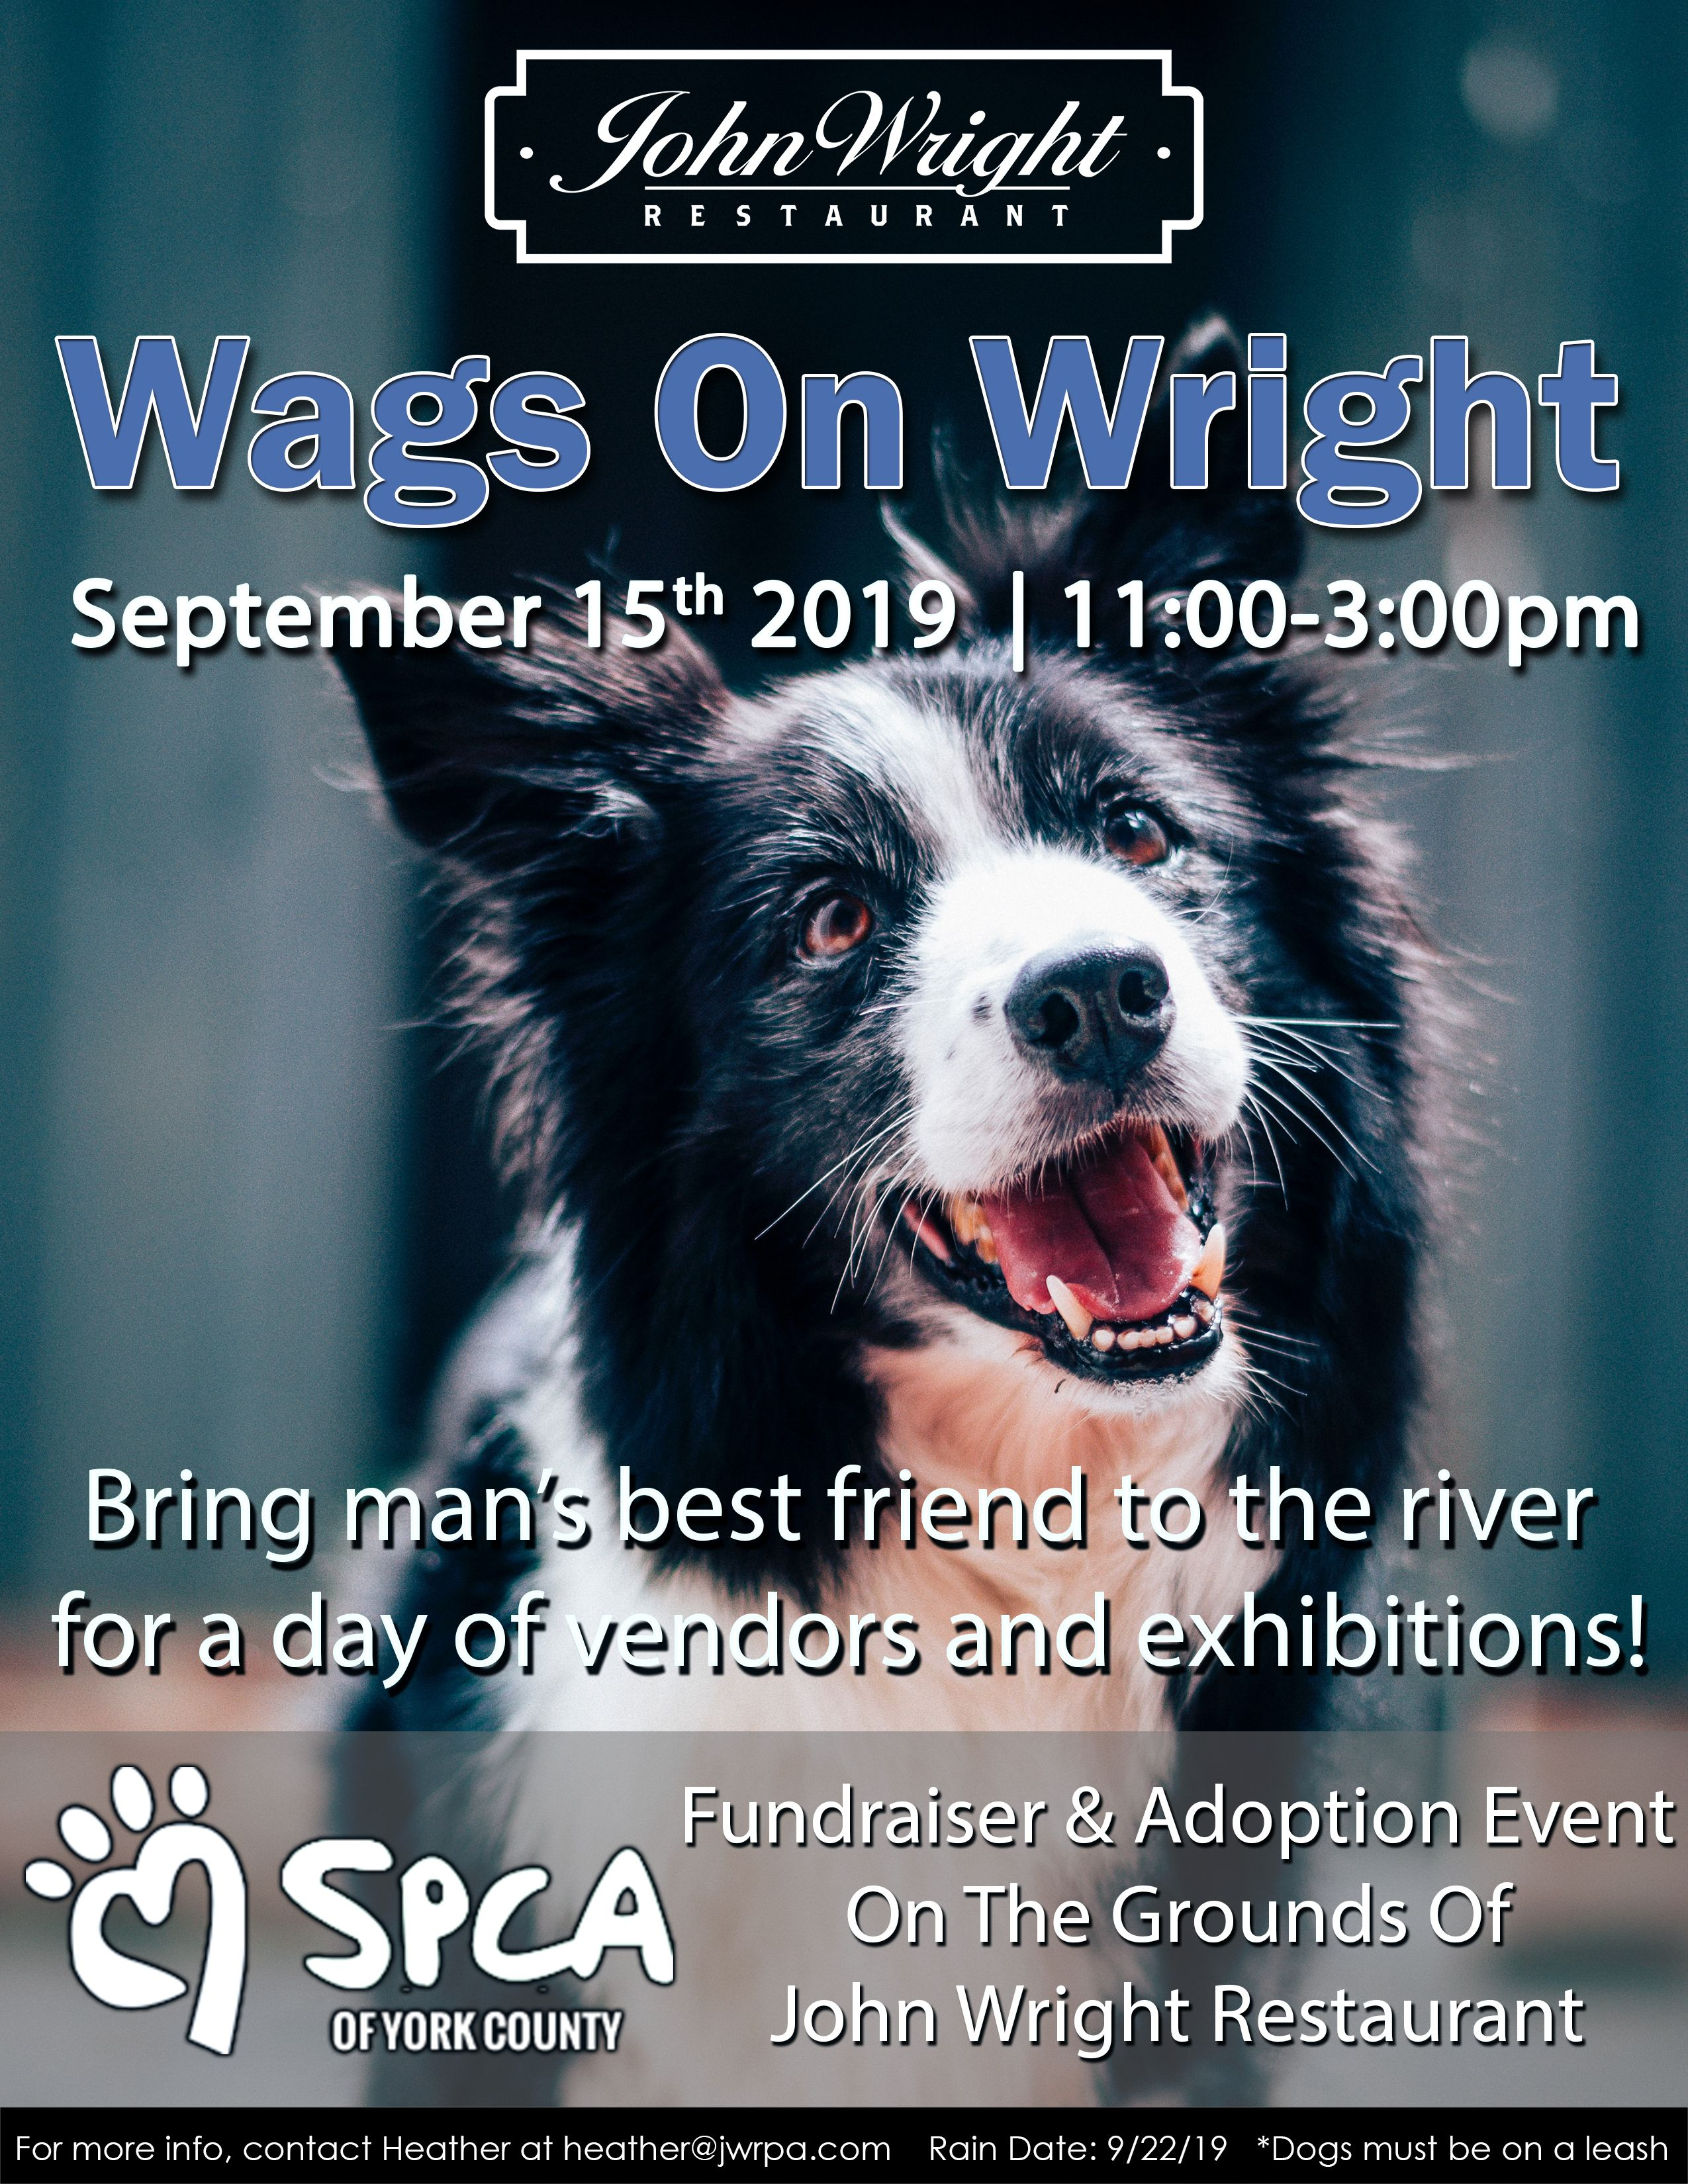 Bring mans best friend to the river for a day of vendors